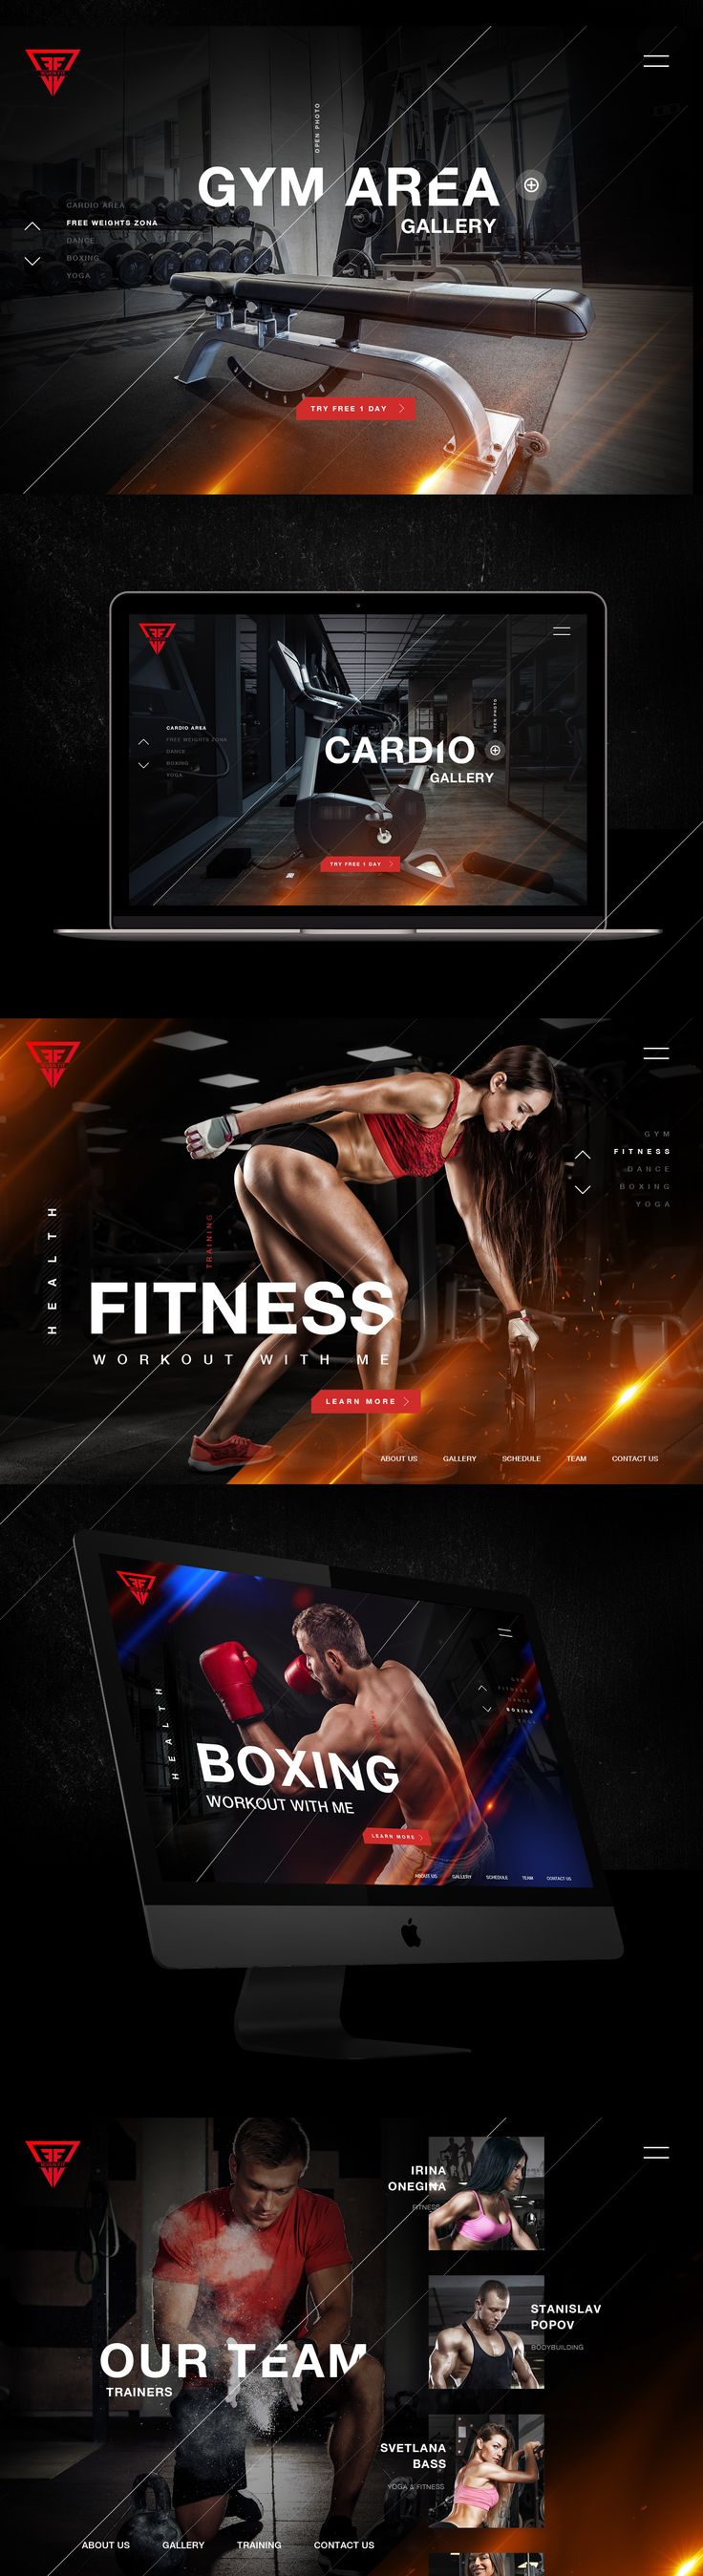 Web design conception fitness and training